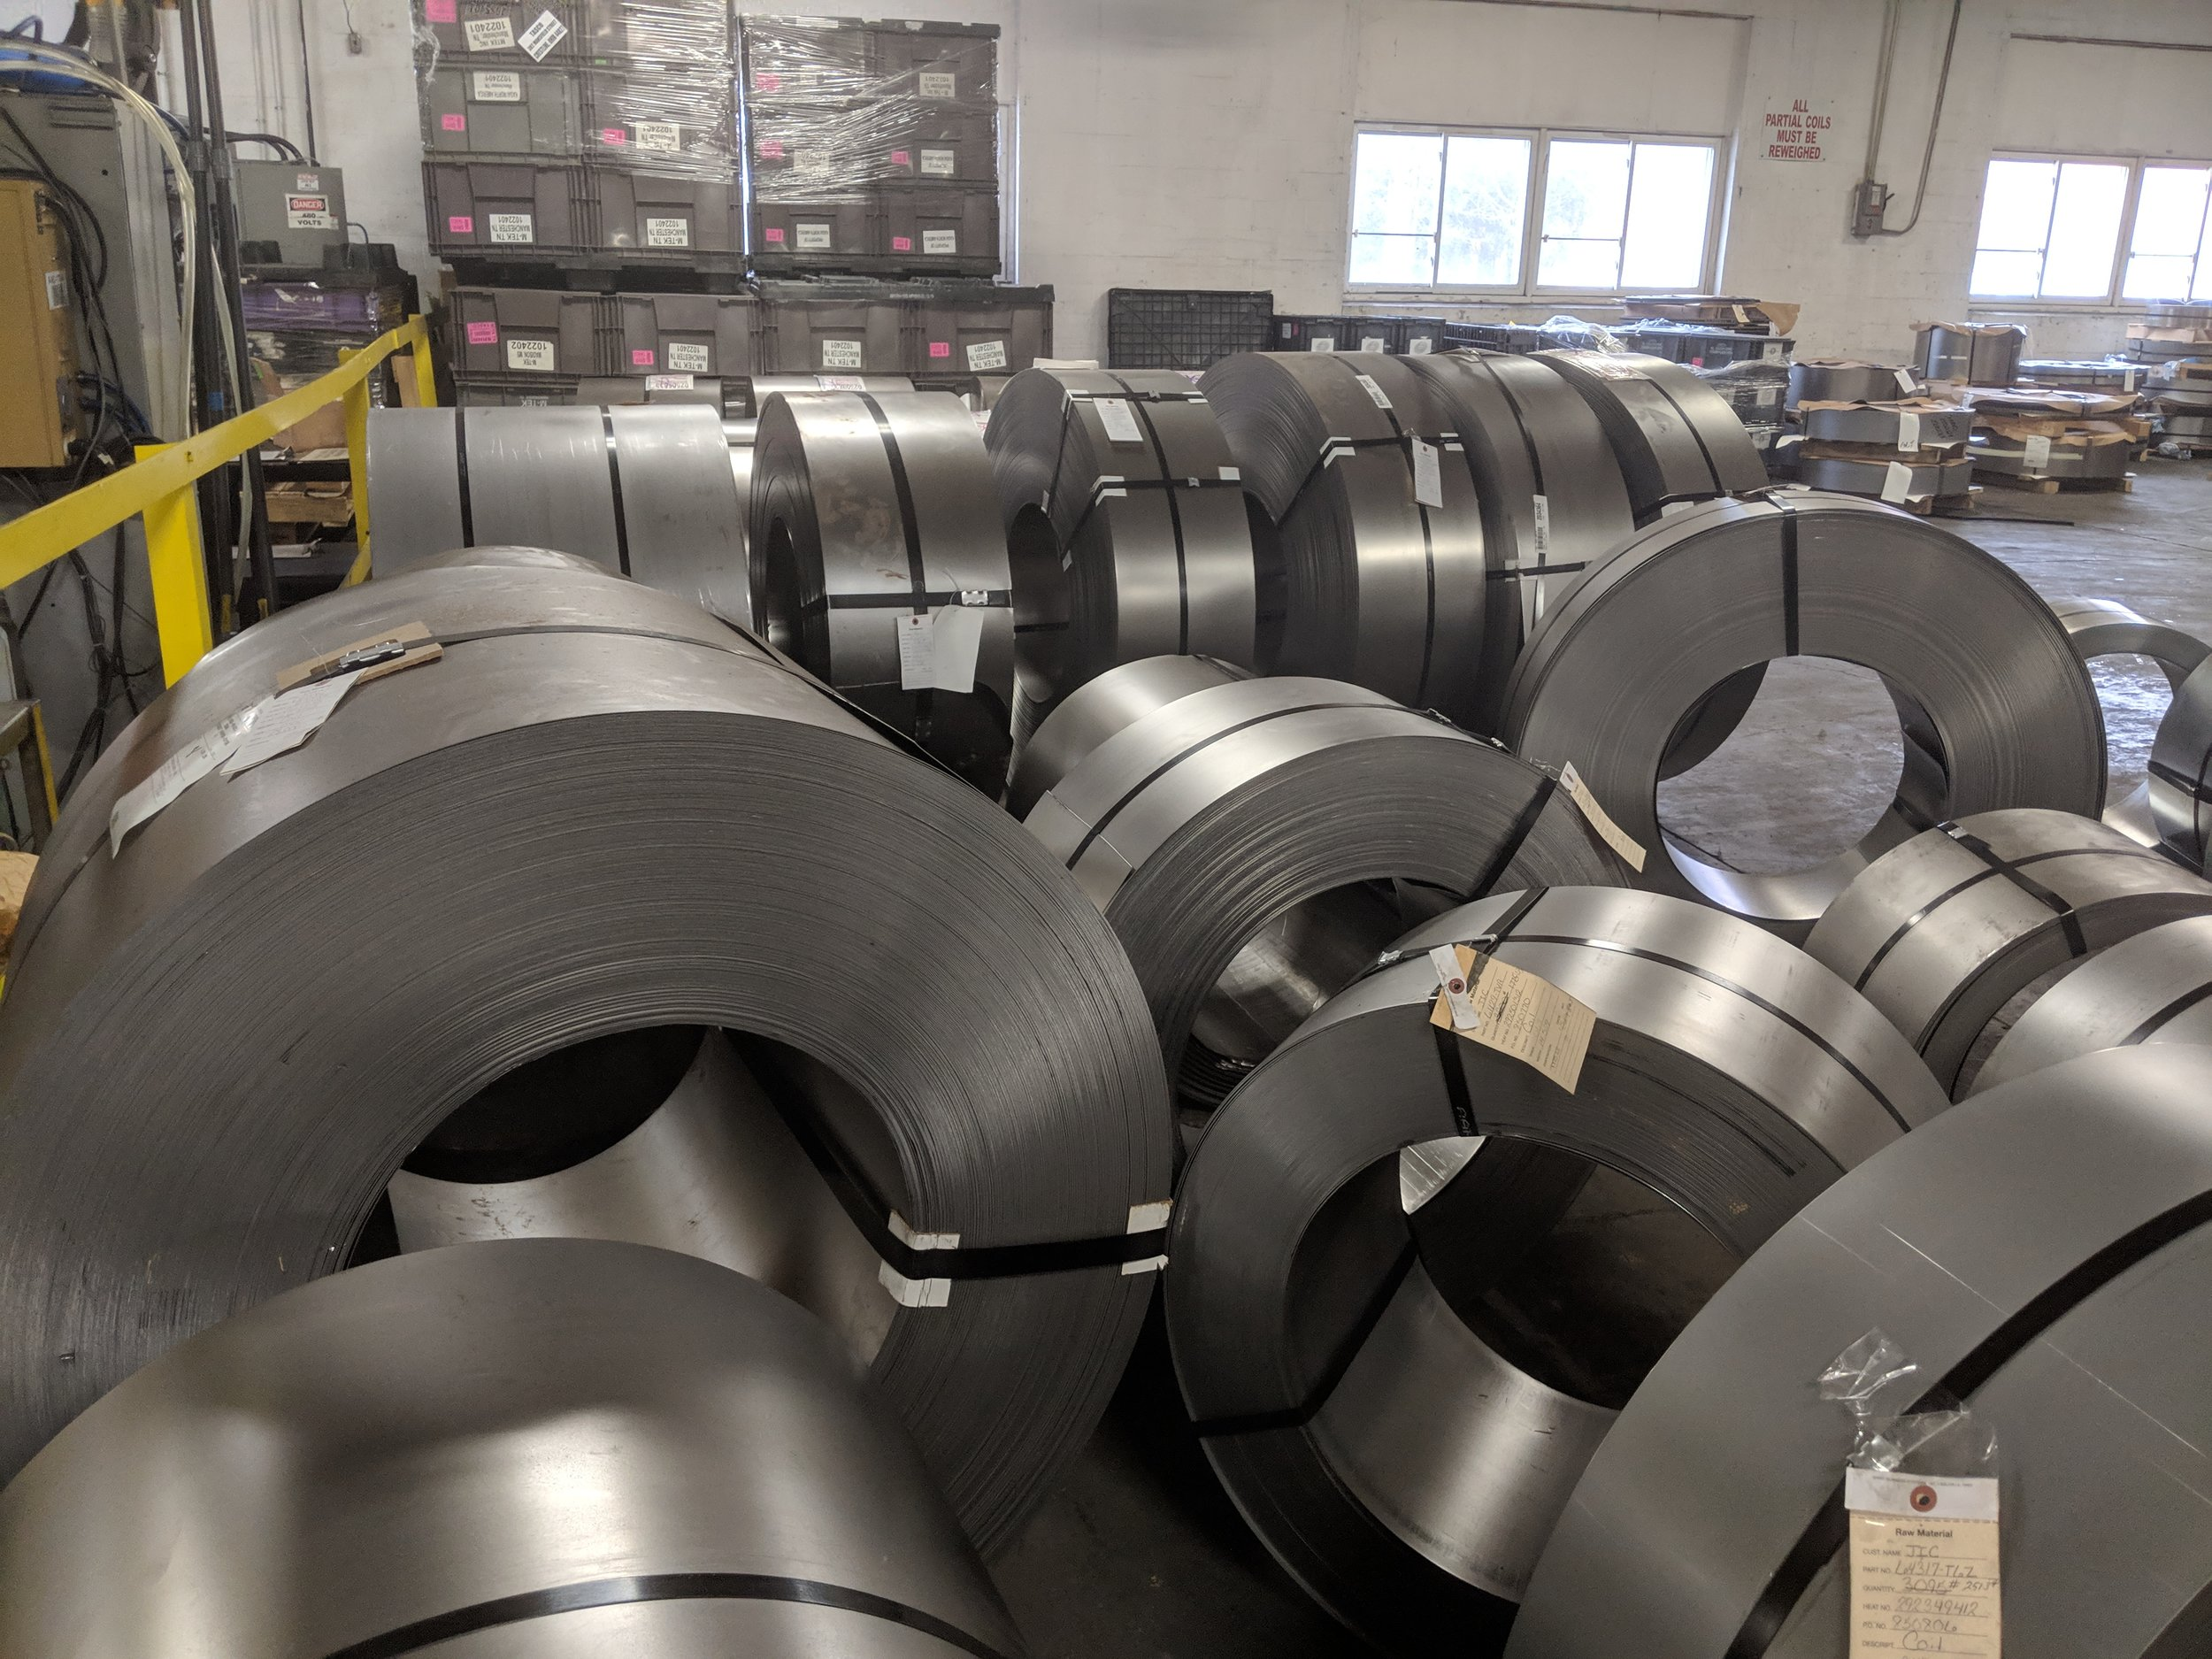 Incoming steel coils ready to be stamped into parts